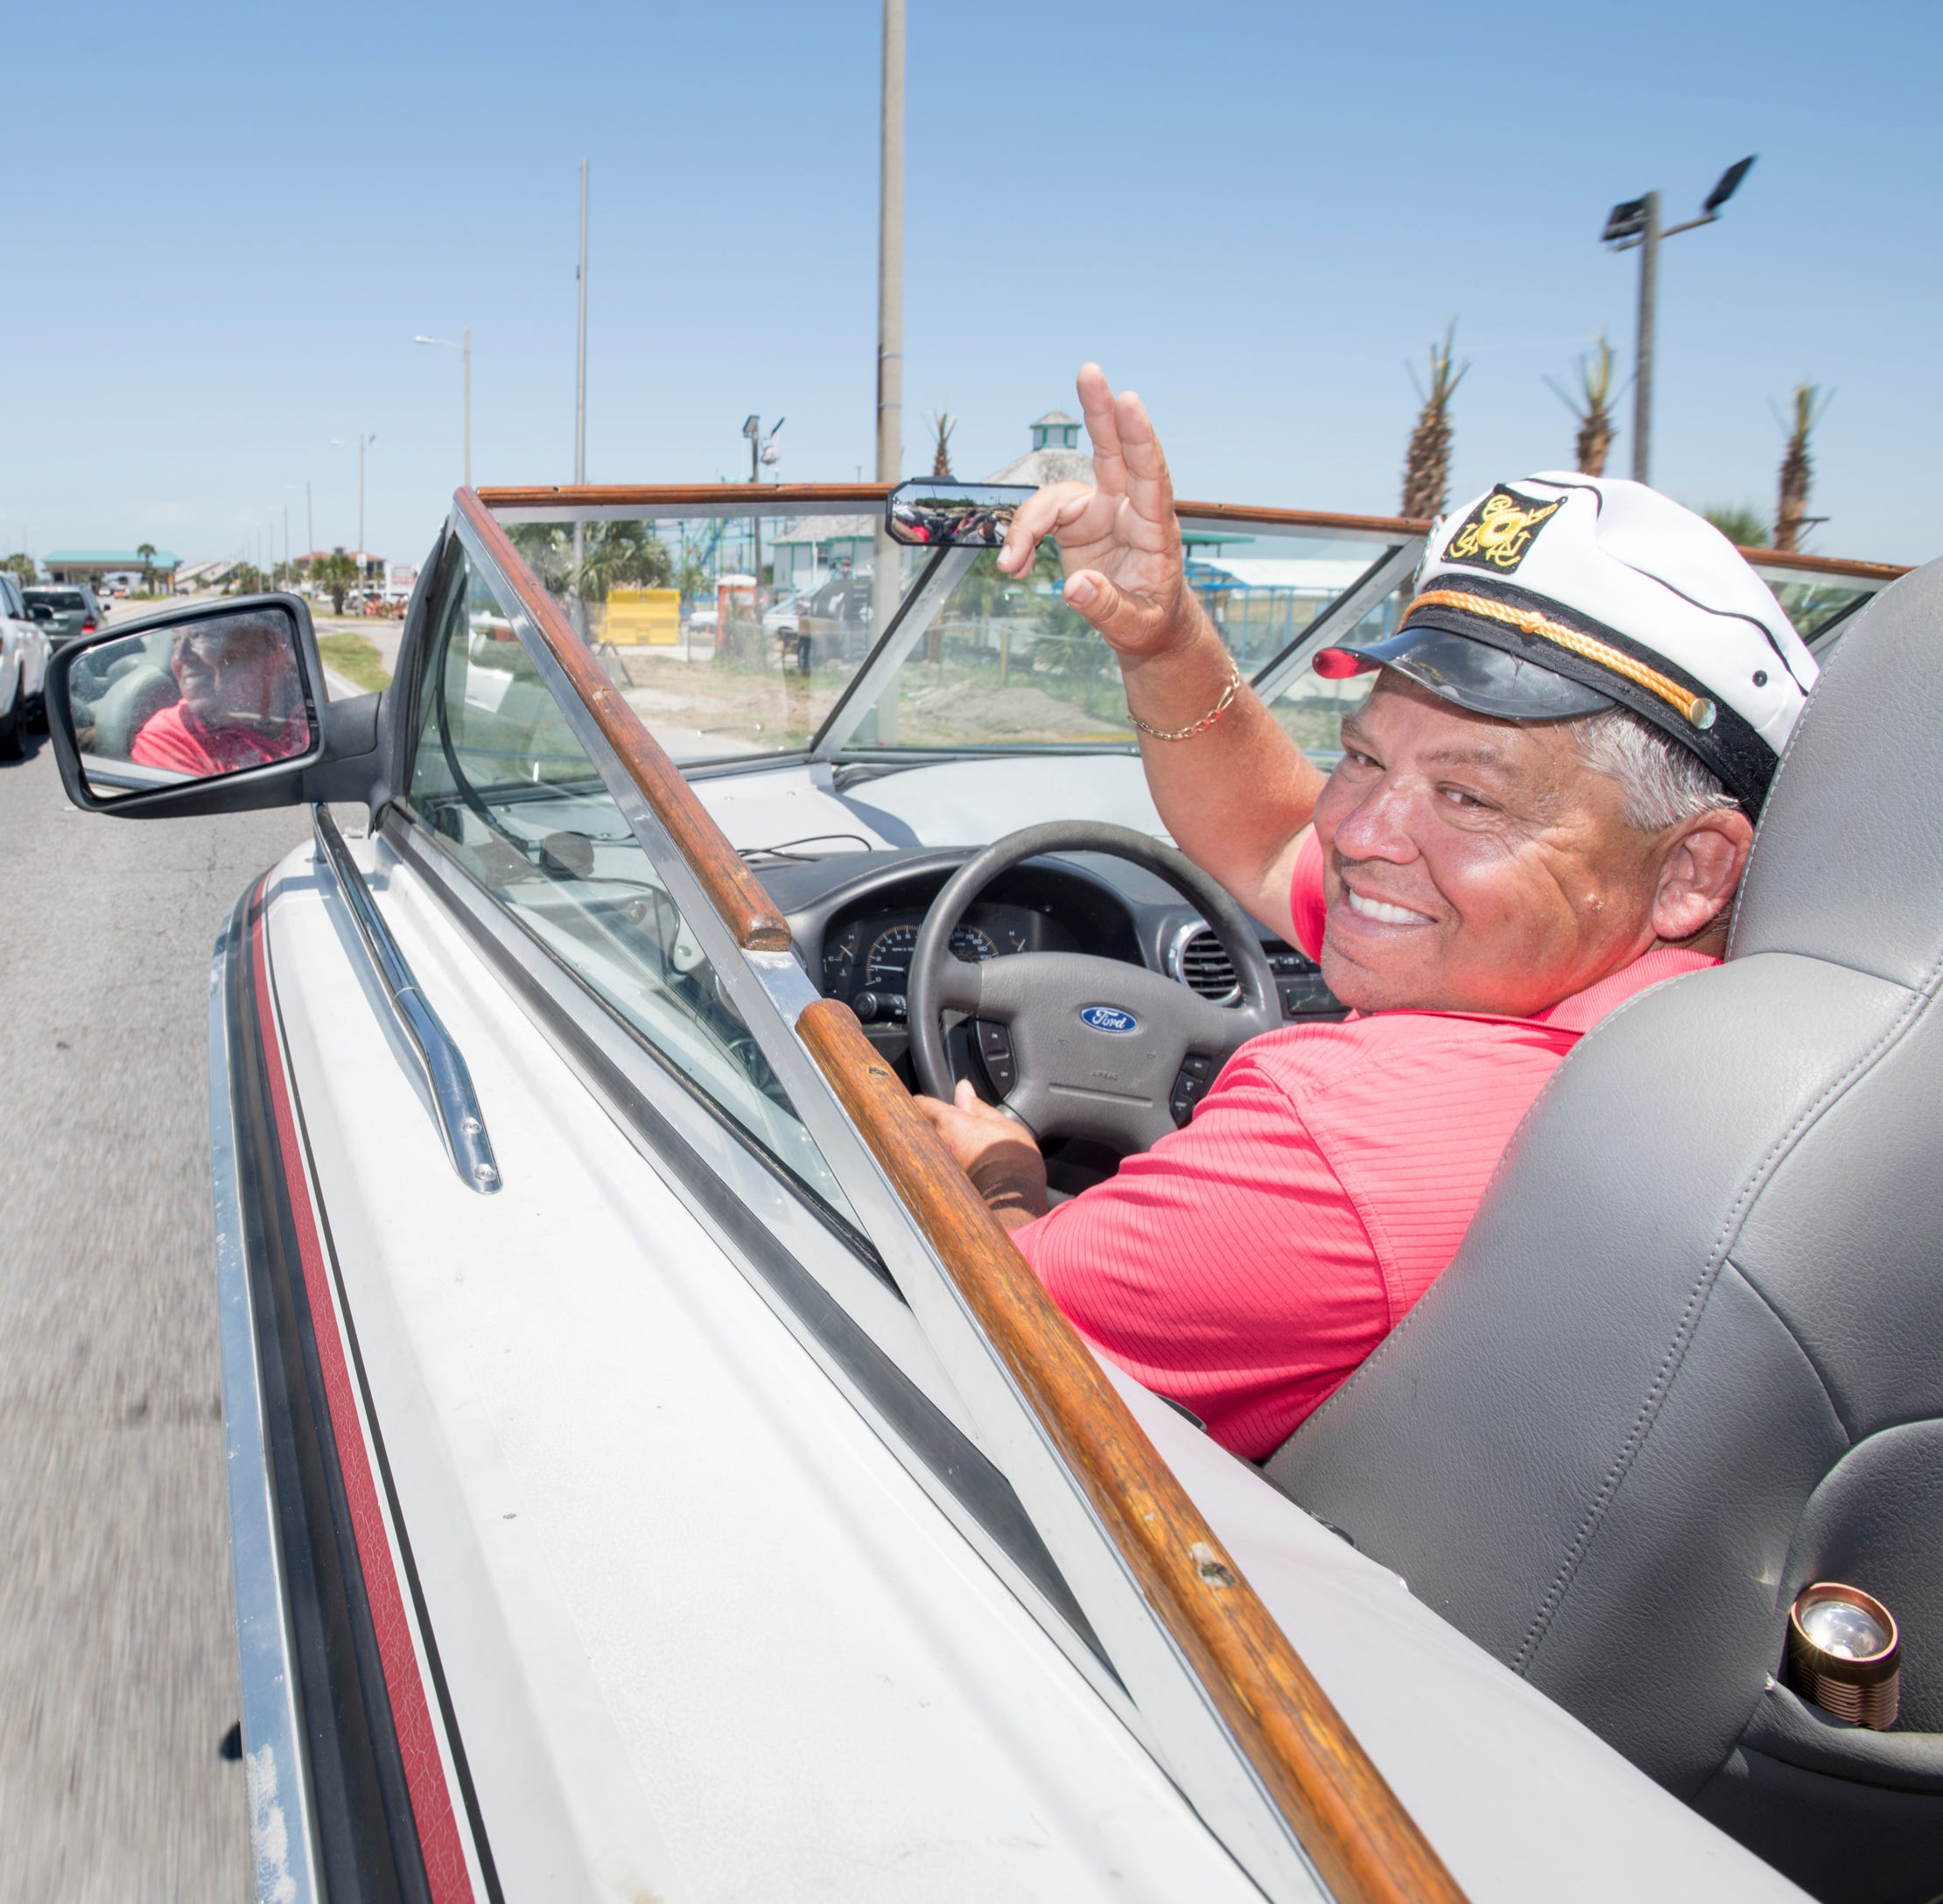 It's part boat, part car and all fun. Meet the captain of Pensacola's boat car